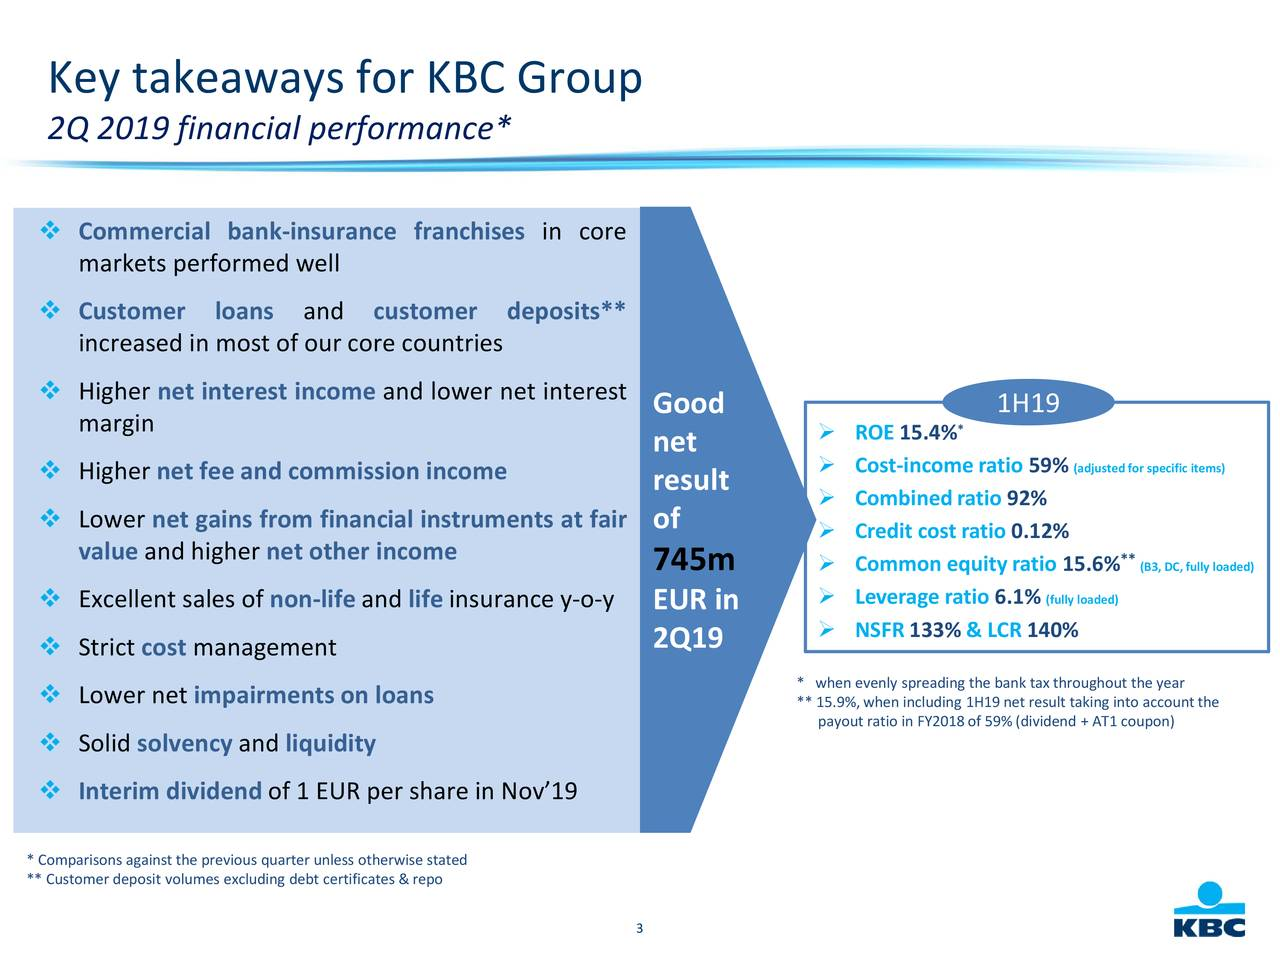 Key takeaways for KBC Group